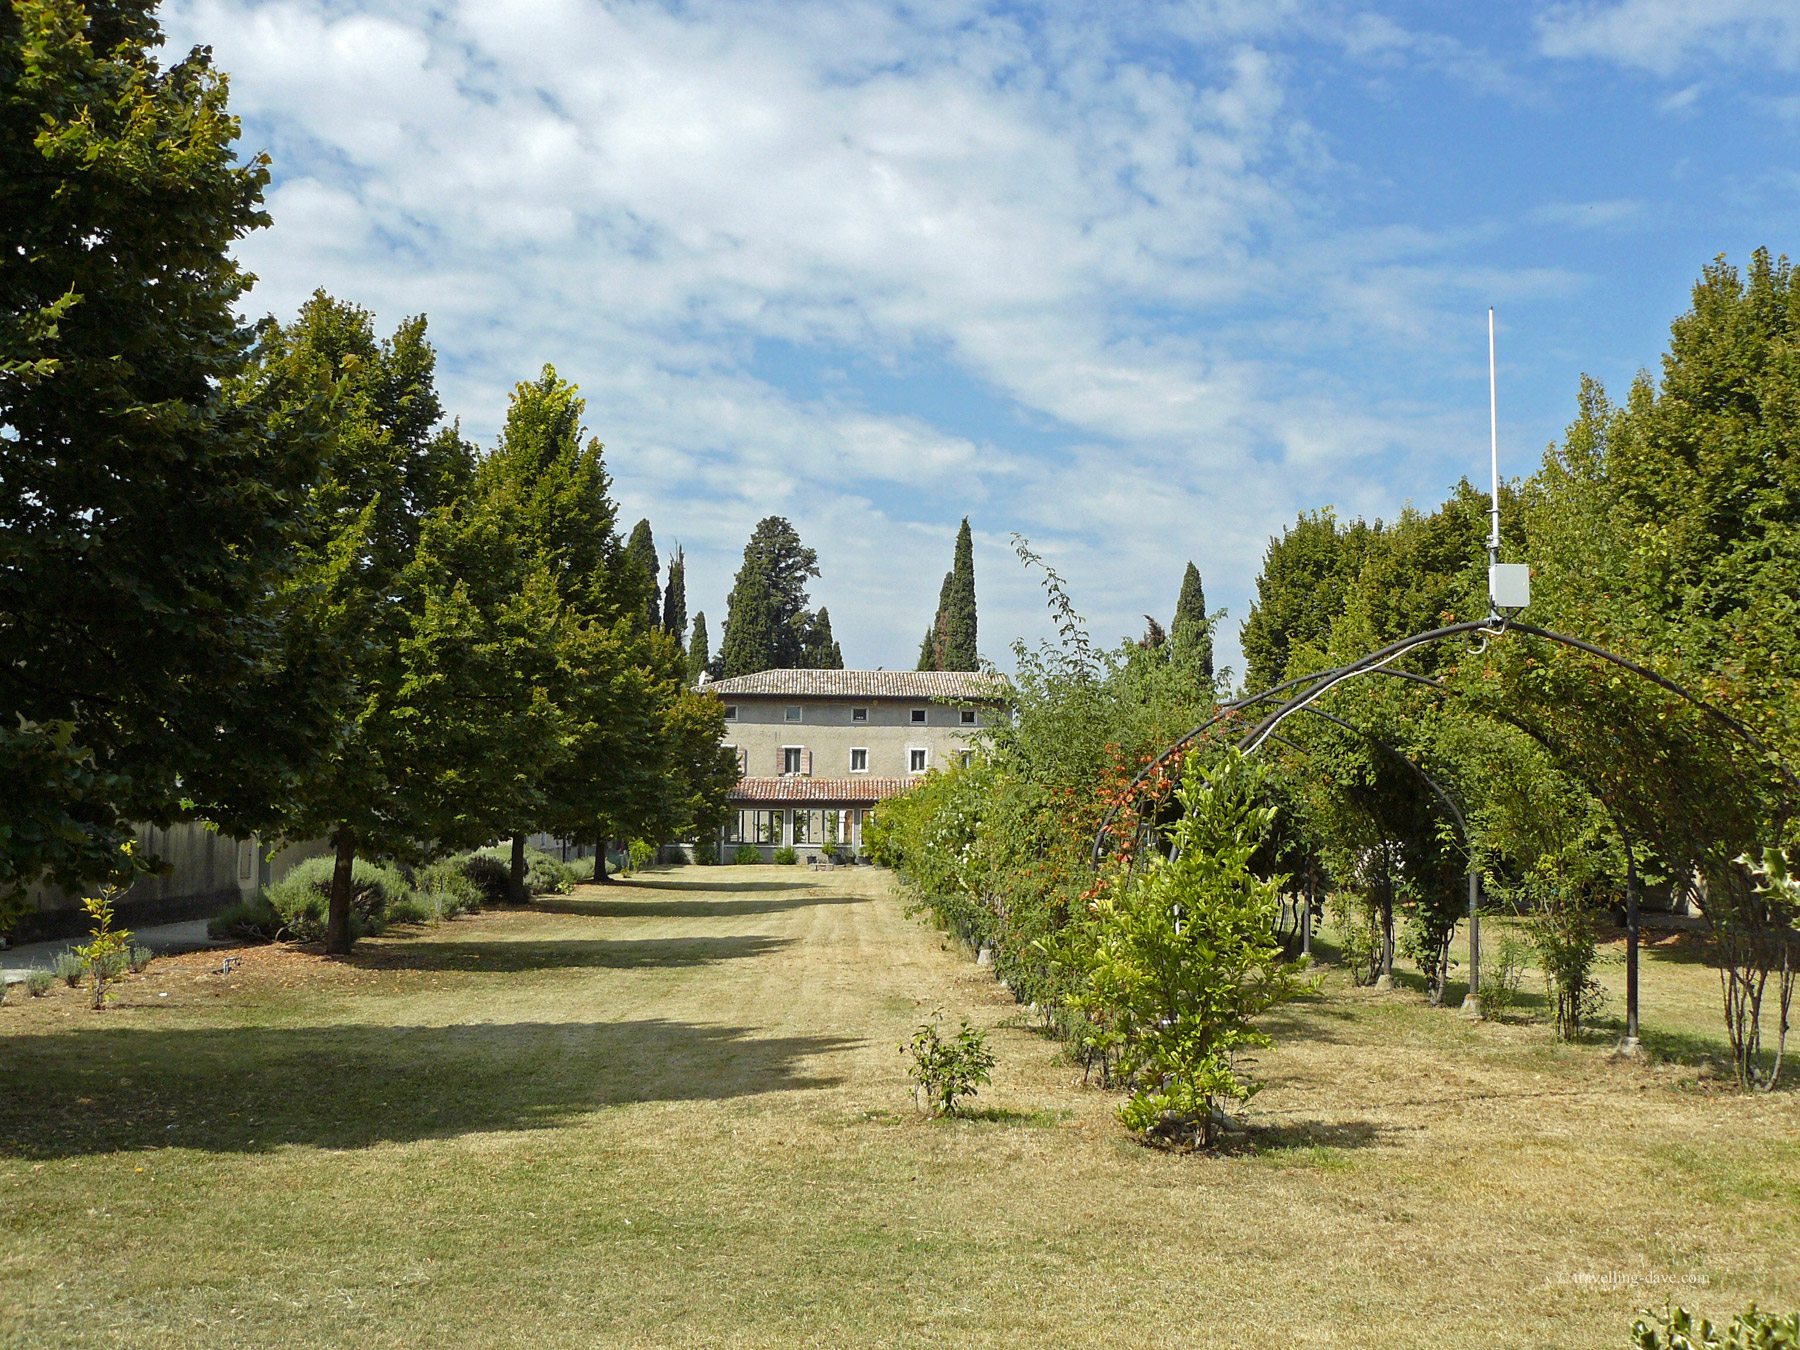 Building and trees at St.George's hermitage in Garda, Italy